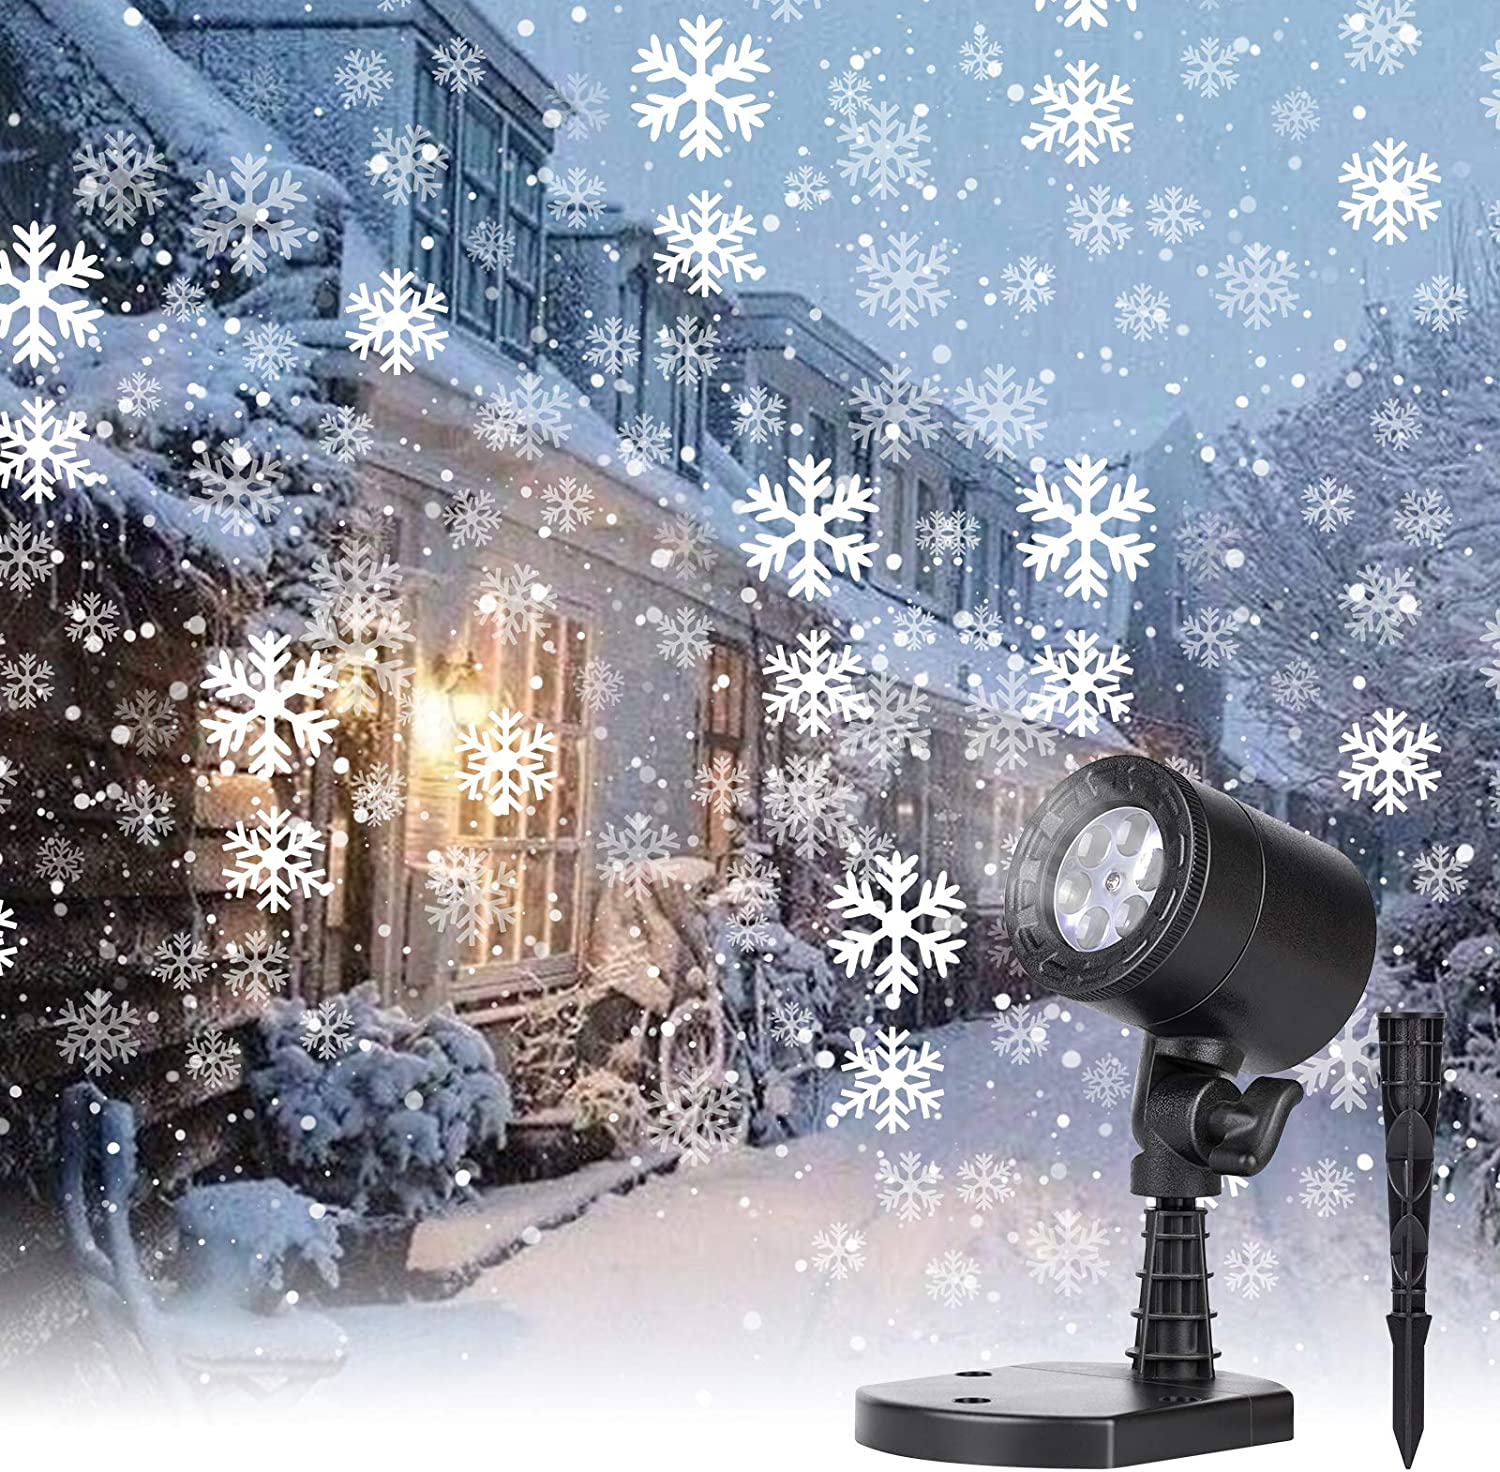 Brightown Christmas Snowflake Projector